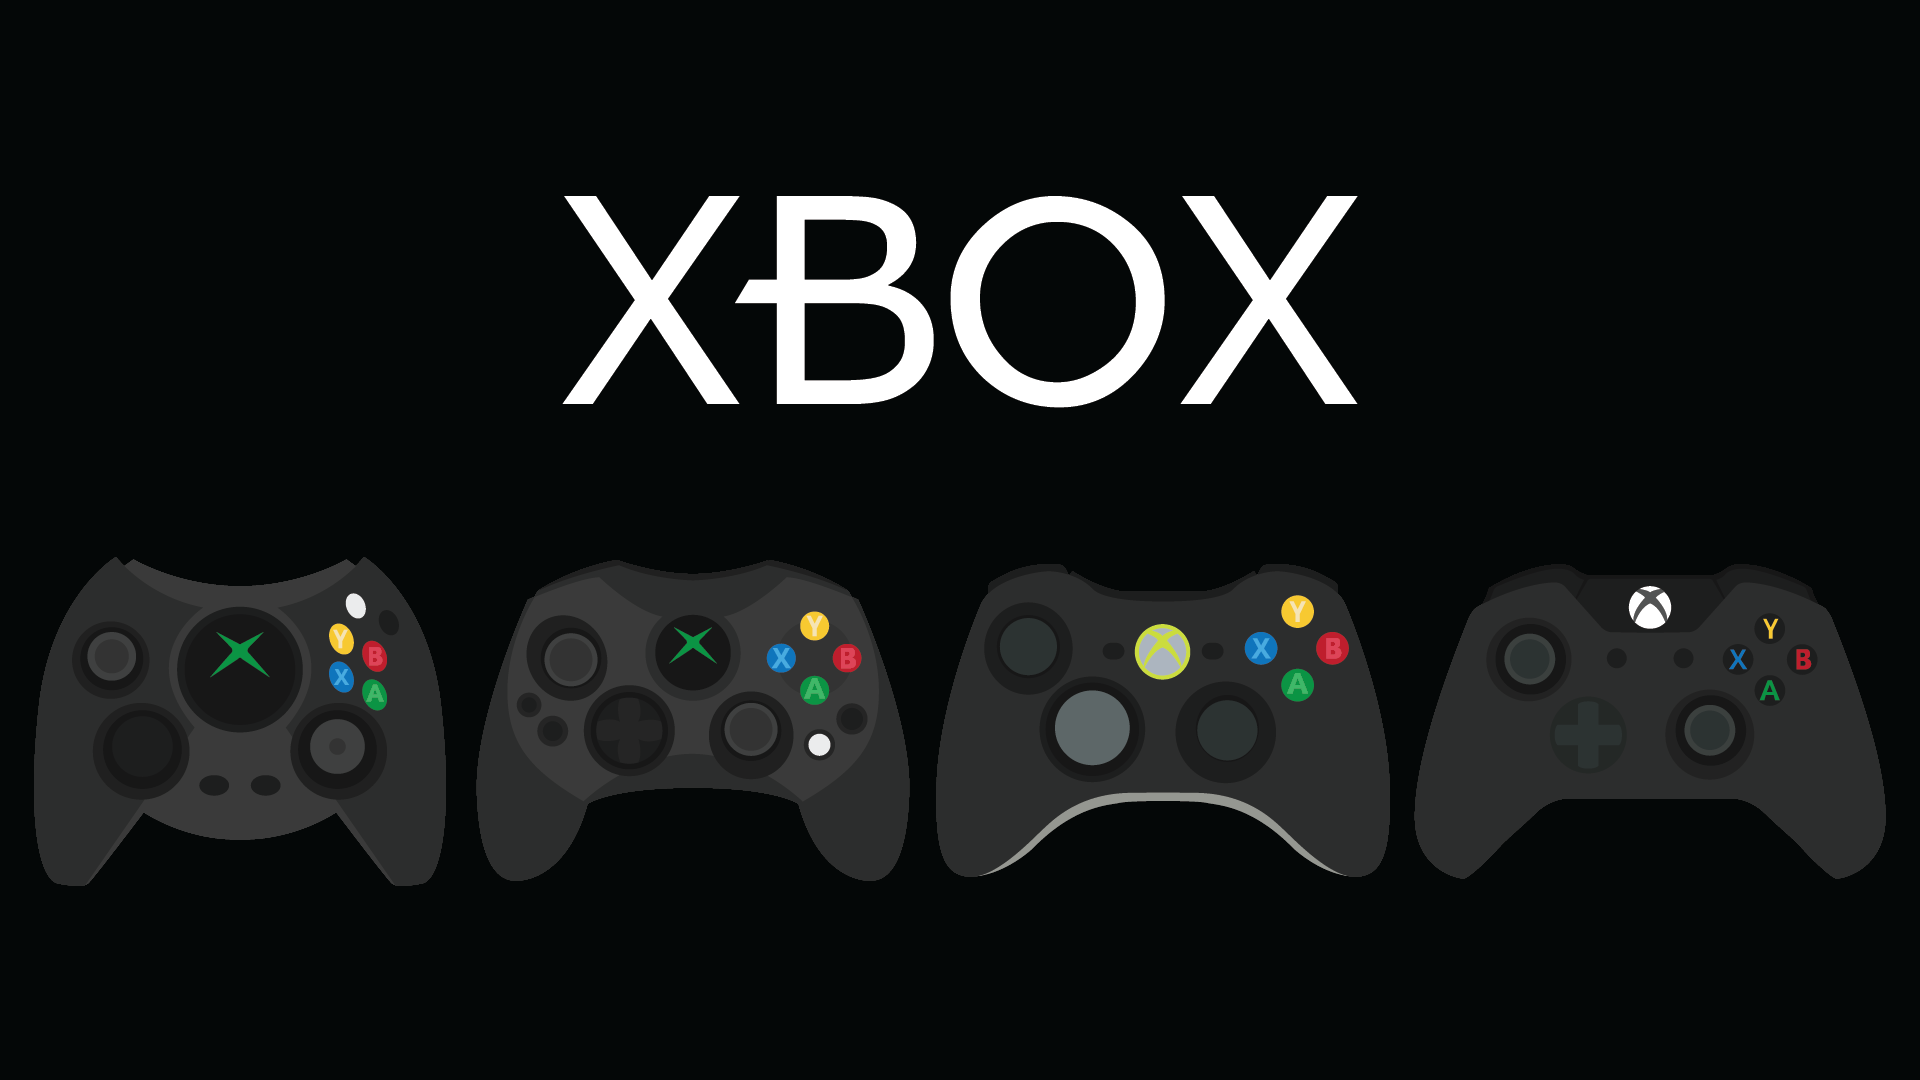 Xbox One Wallpaper by Earnestine Mata PC.45-DUL